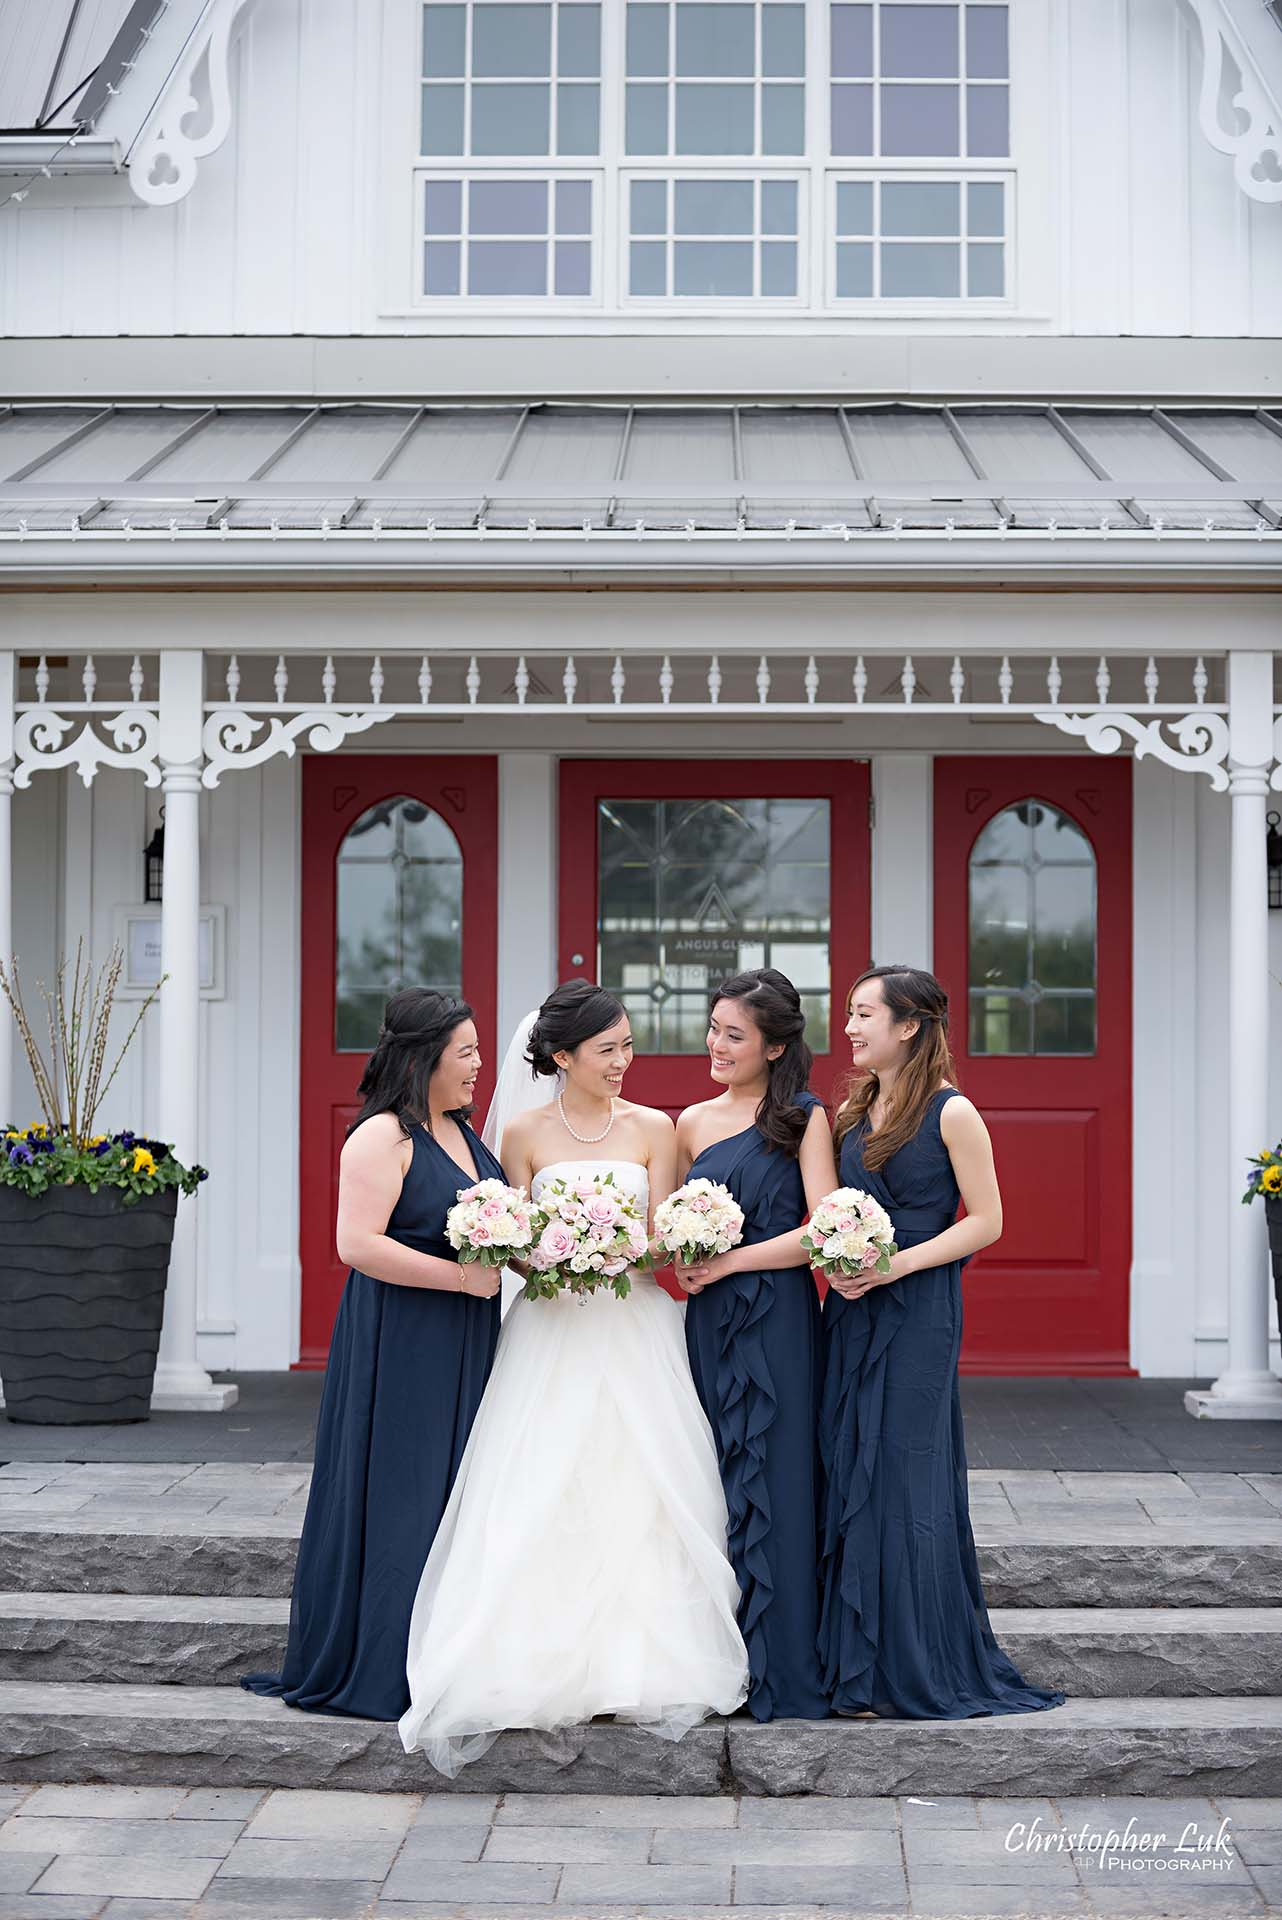 Christopher Luk Toronto Wedding Photographer Angus Glen Golf Club Markham Victoria Room Kennedy Loft Main Historic Estate Building Entrance Bridal Party Maid of Honour Bridesmaids Together Natural Candid Photojournalistic Smile Laugh